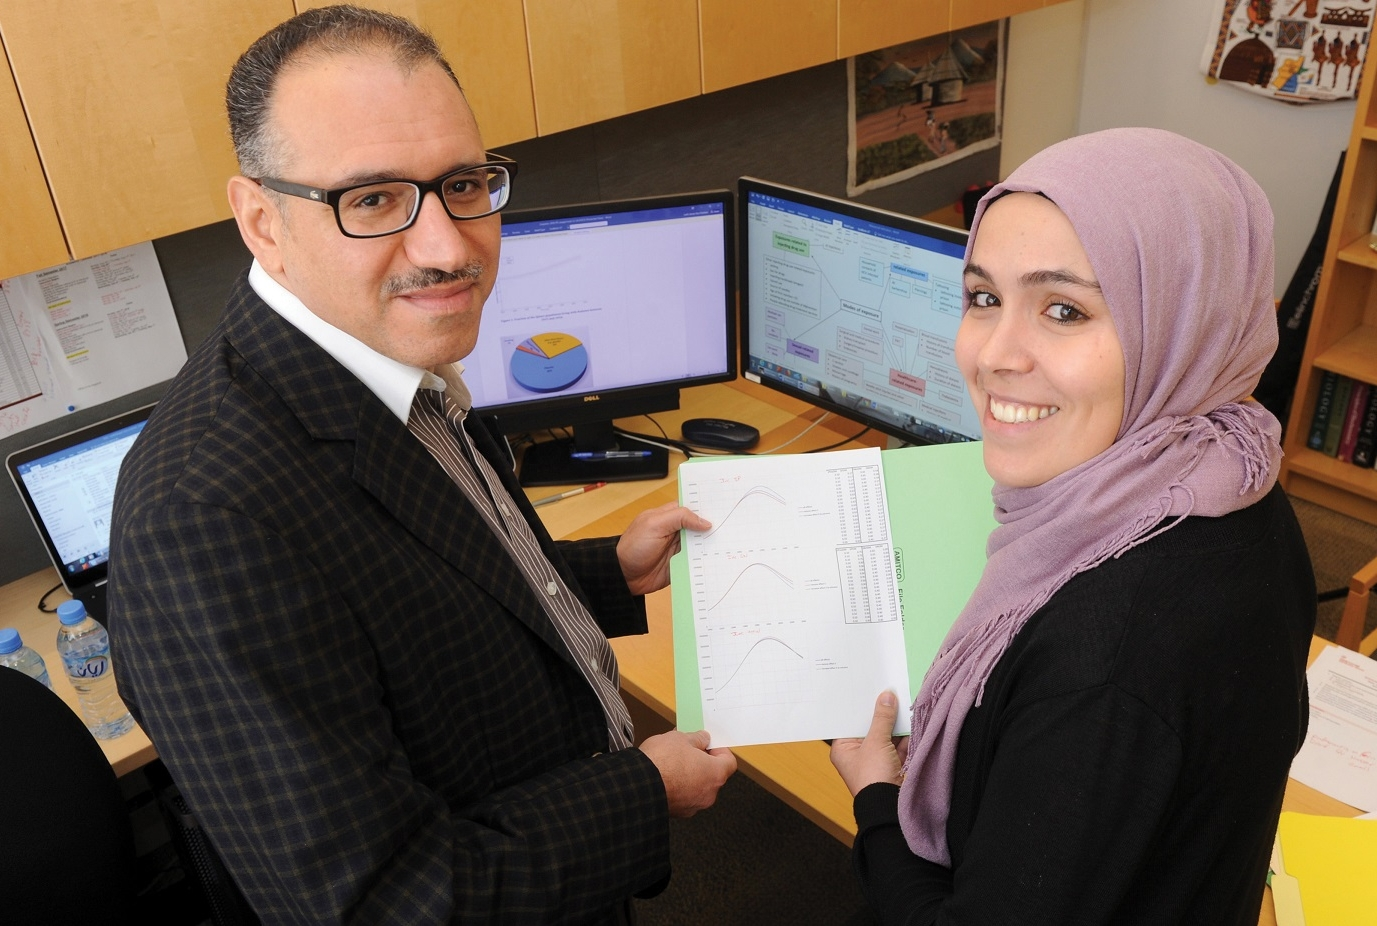 Dr. Laith Abu-Raddad (left), and Susanne Awad. Photo credit: The Qatar Foundation